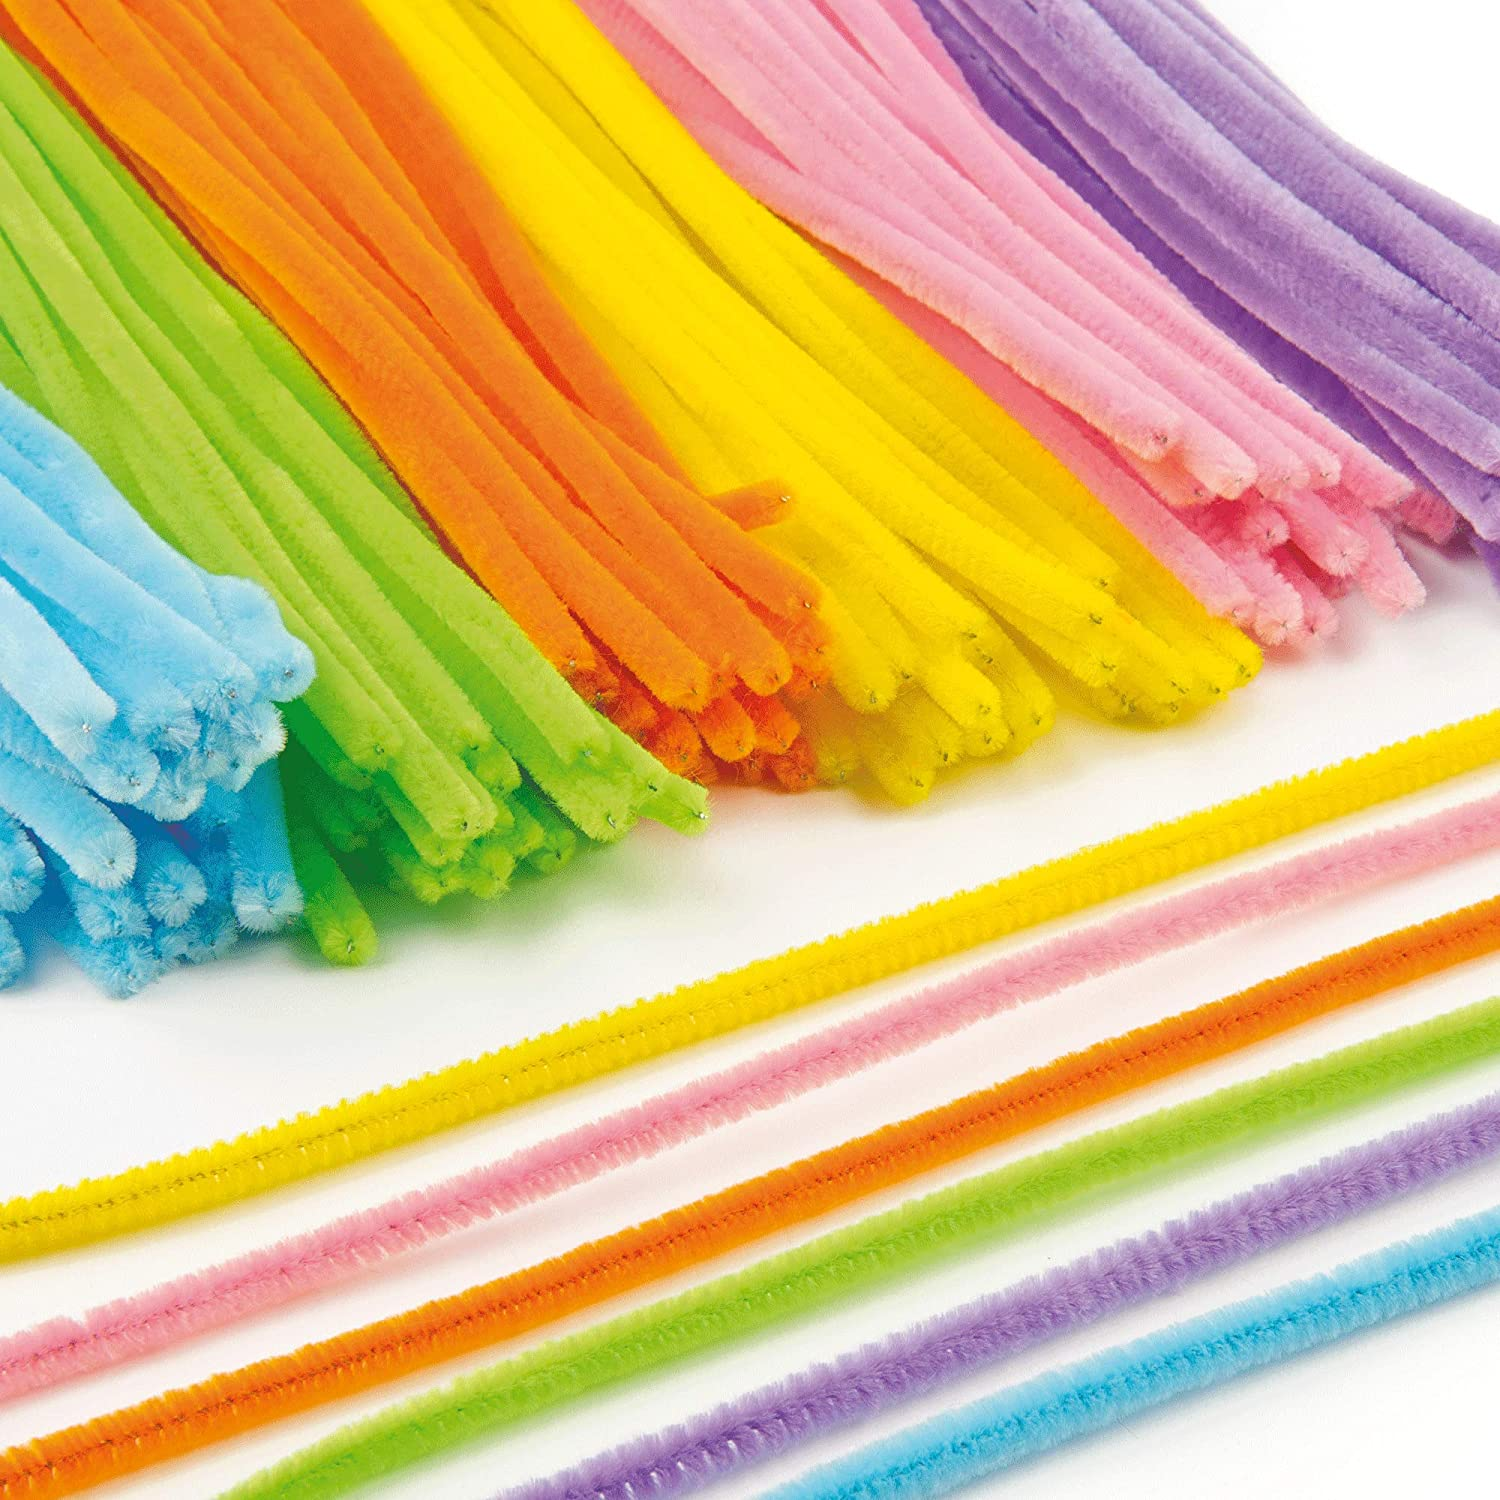 Baker Ross Fluffy Soft Pipe Cleaners, Value Pack of Craft Supplies for Kids in 6 Assorted Colors (Pack of 120)